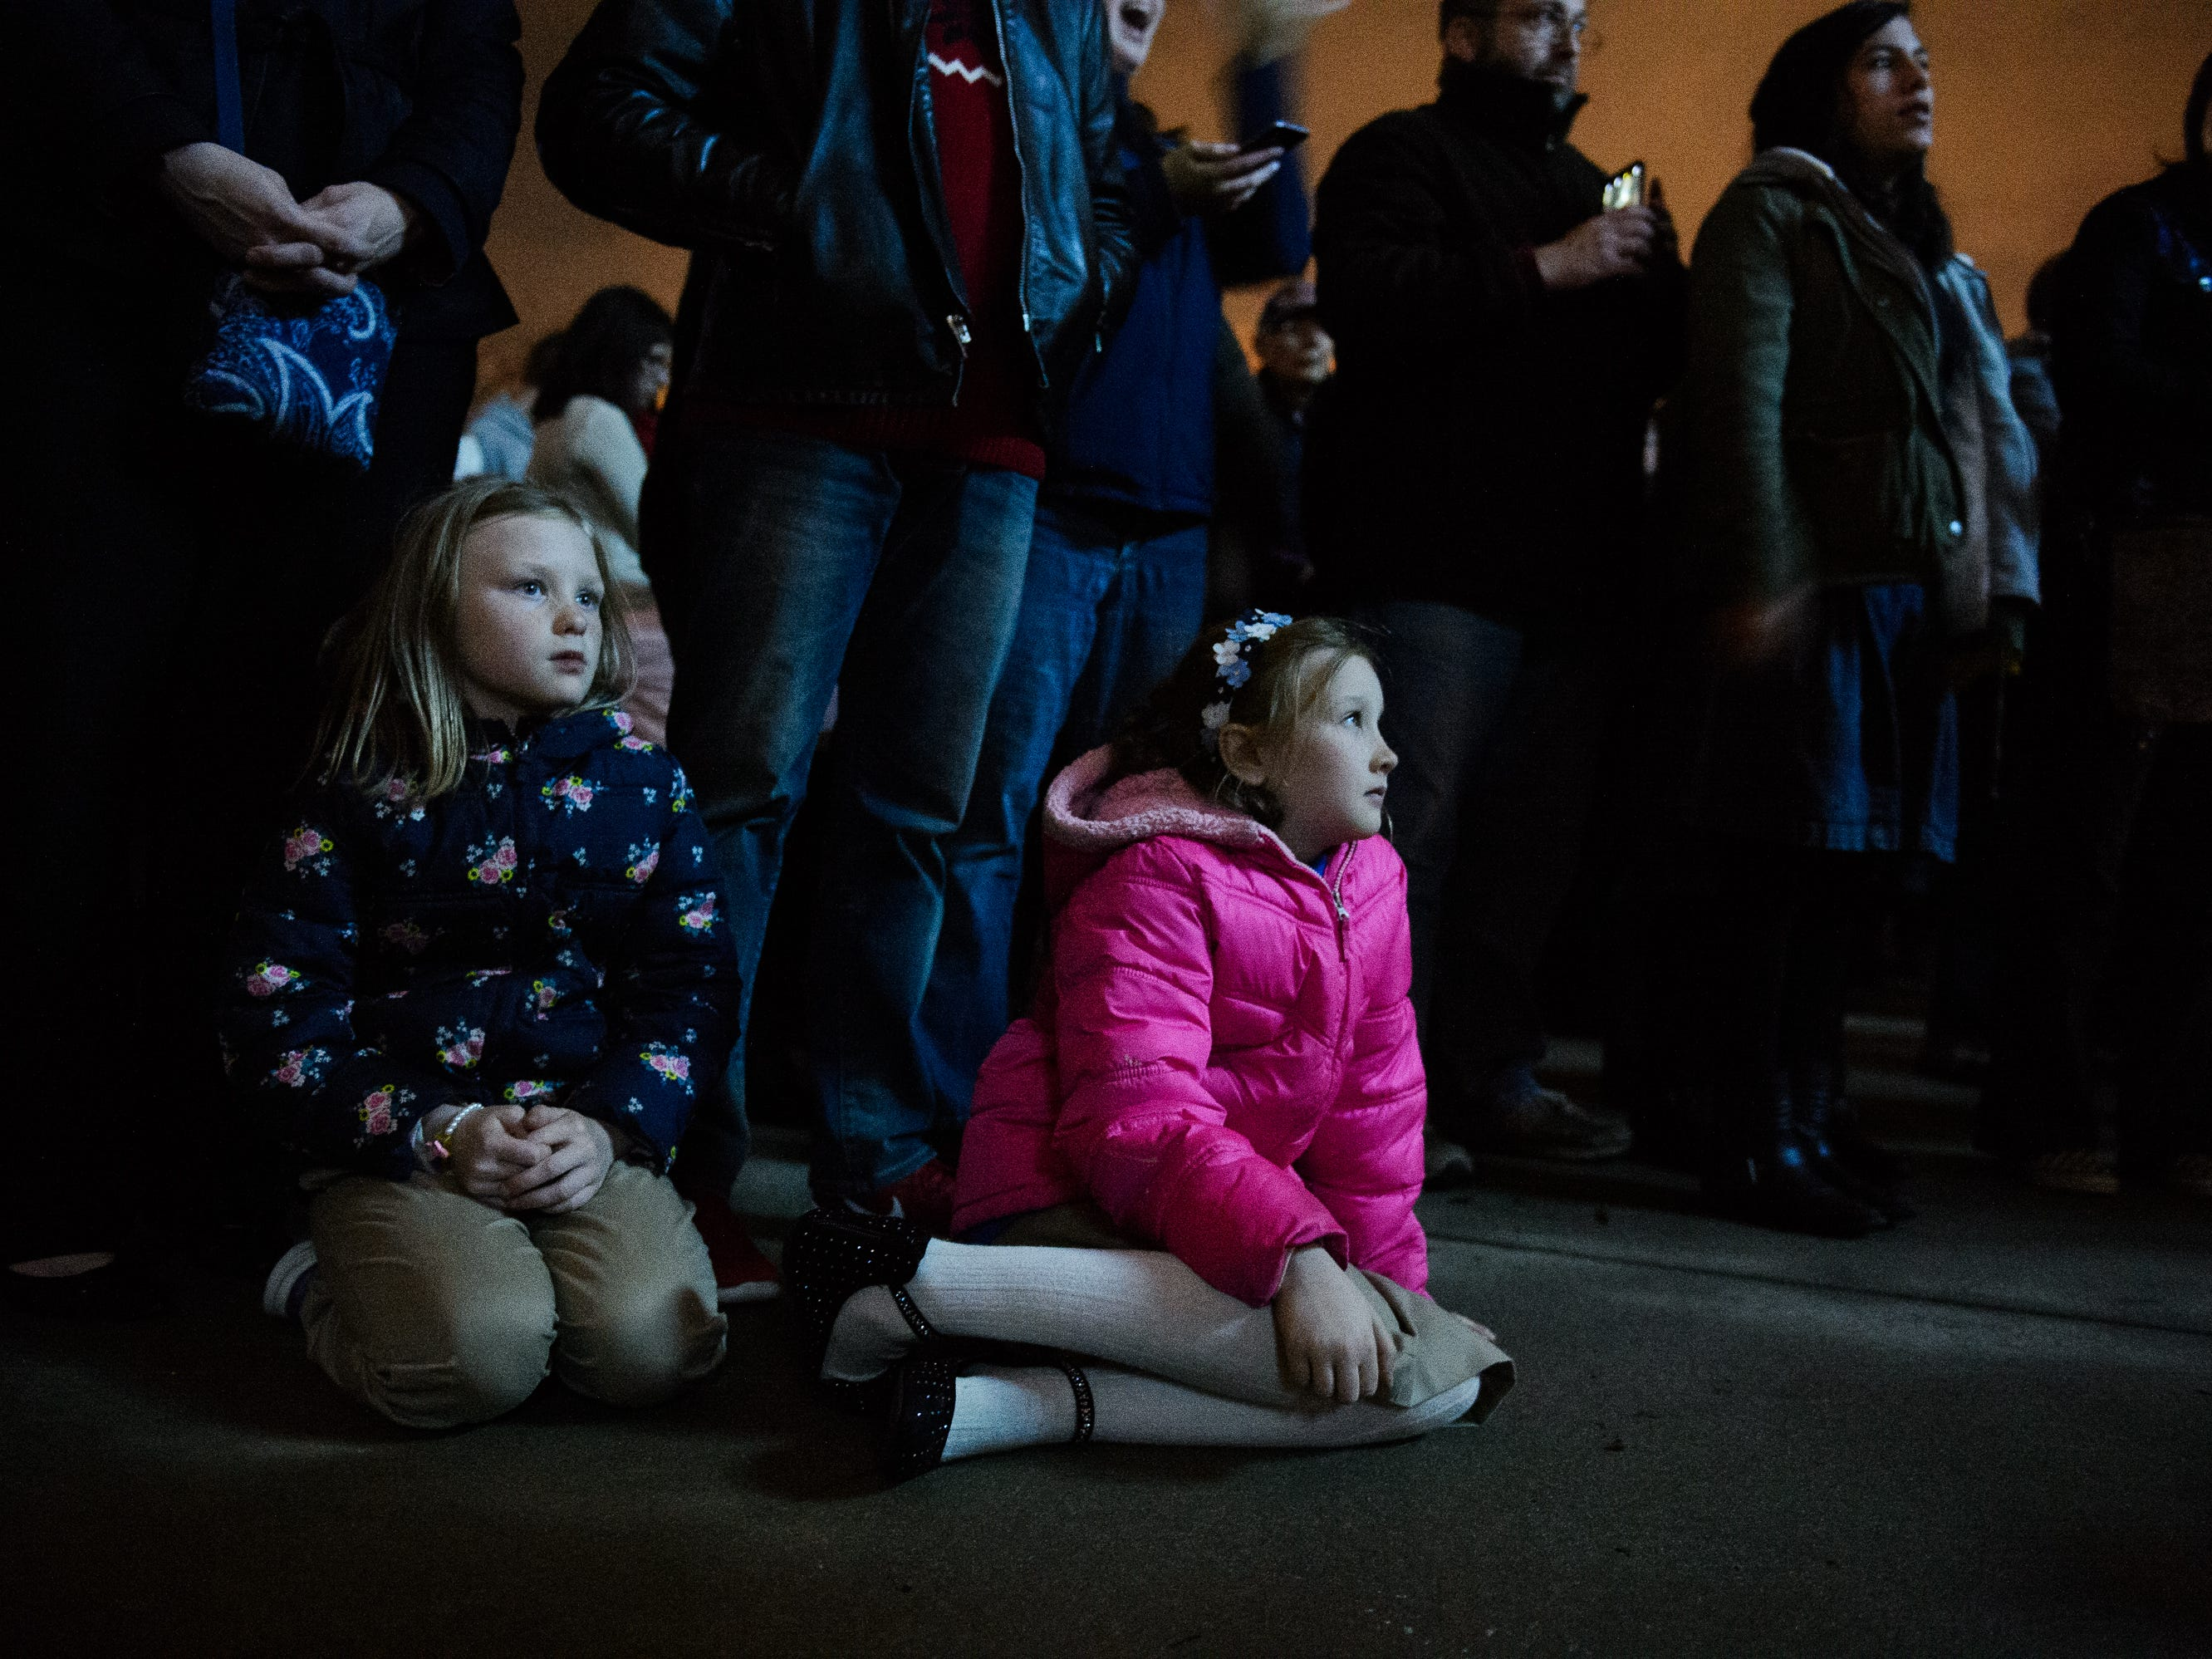 Noel Boudreau 8, and her sister Evelyn, 9, watch the choir sing at Bob Jones University's annual Christmas Celebration on Friday, Nov. 30, 2018.